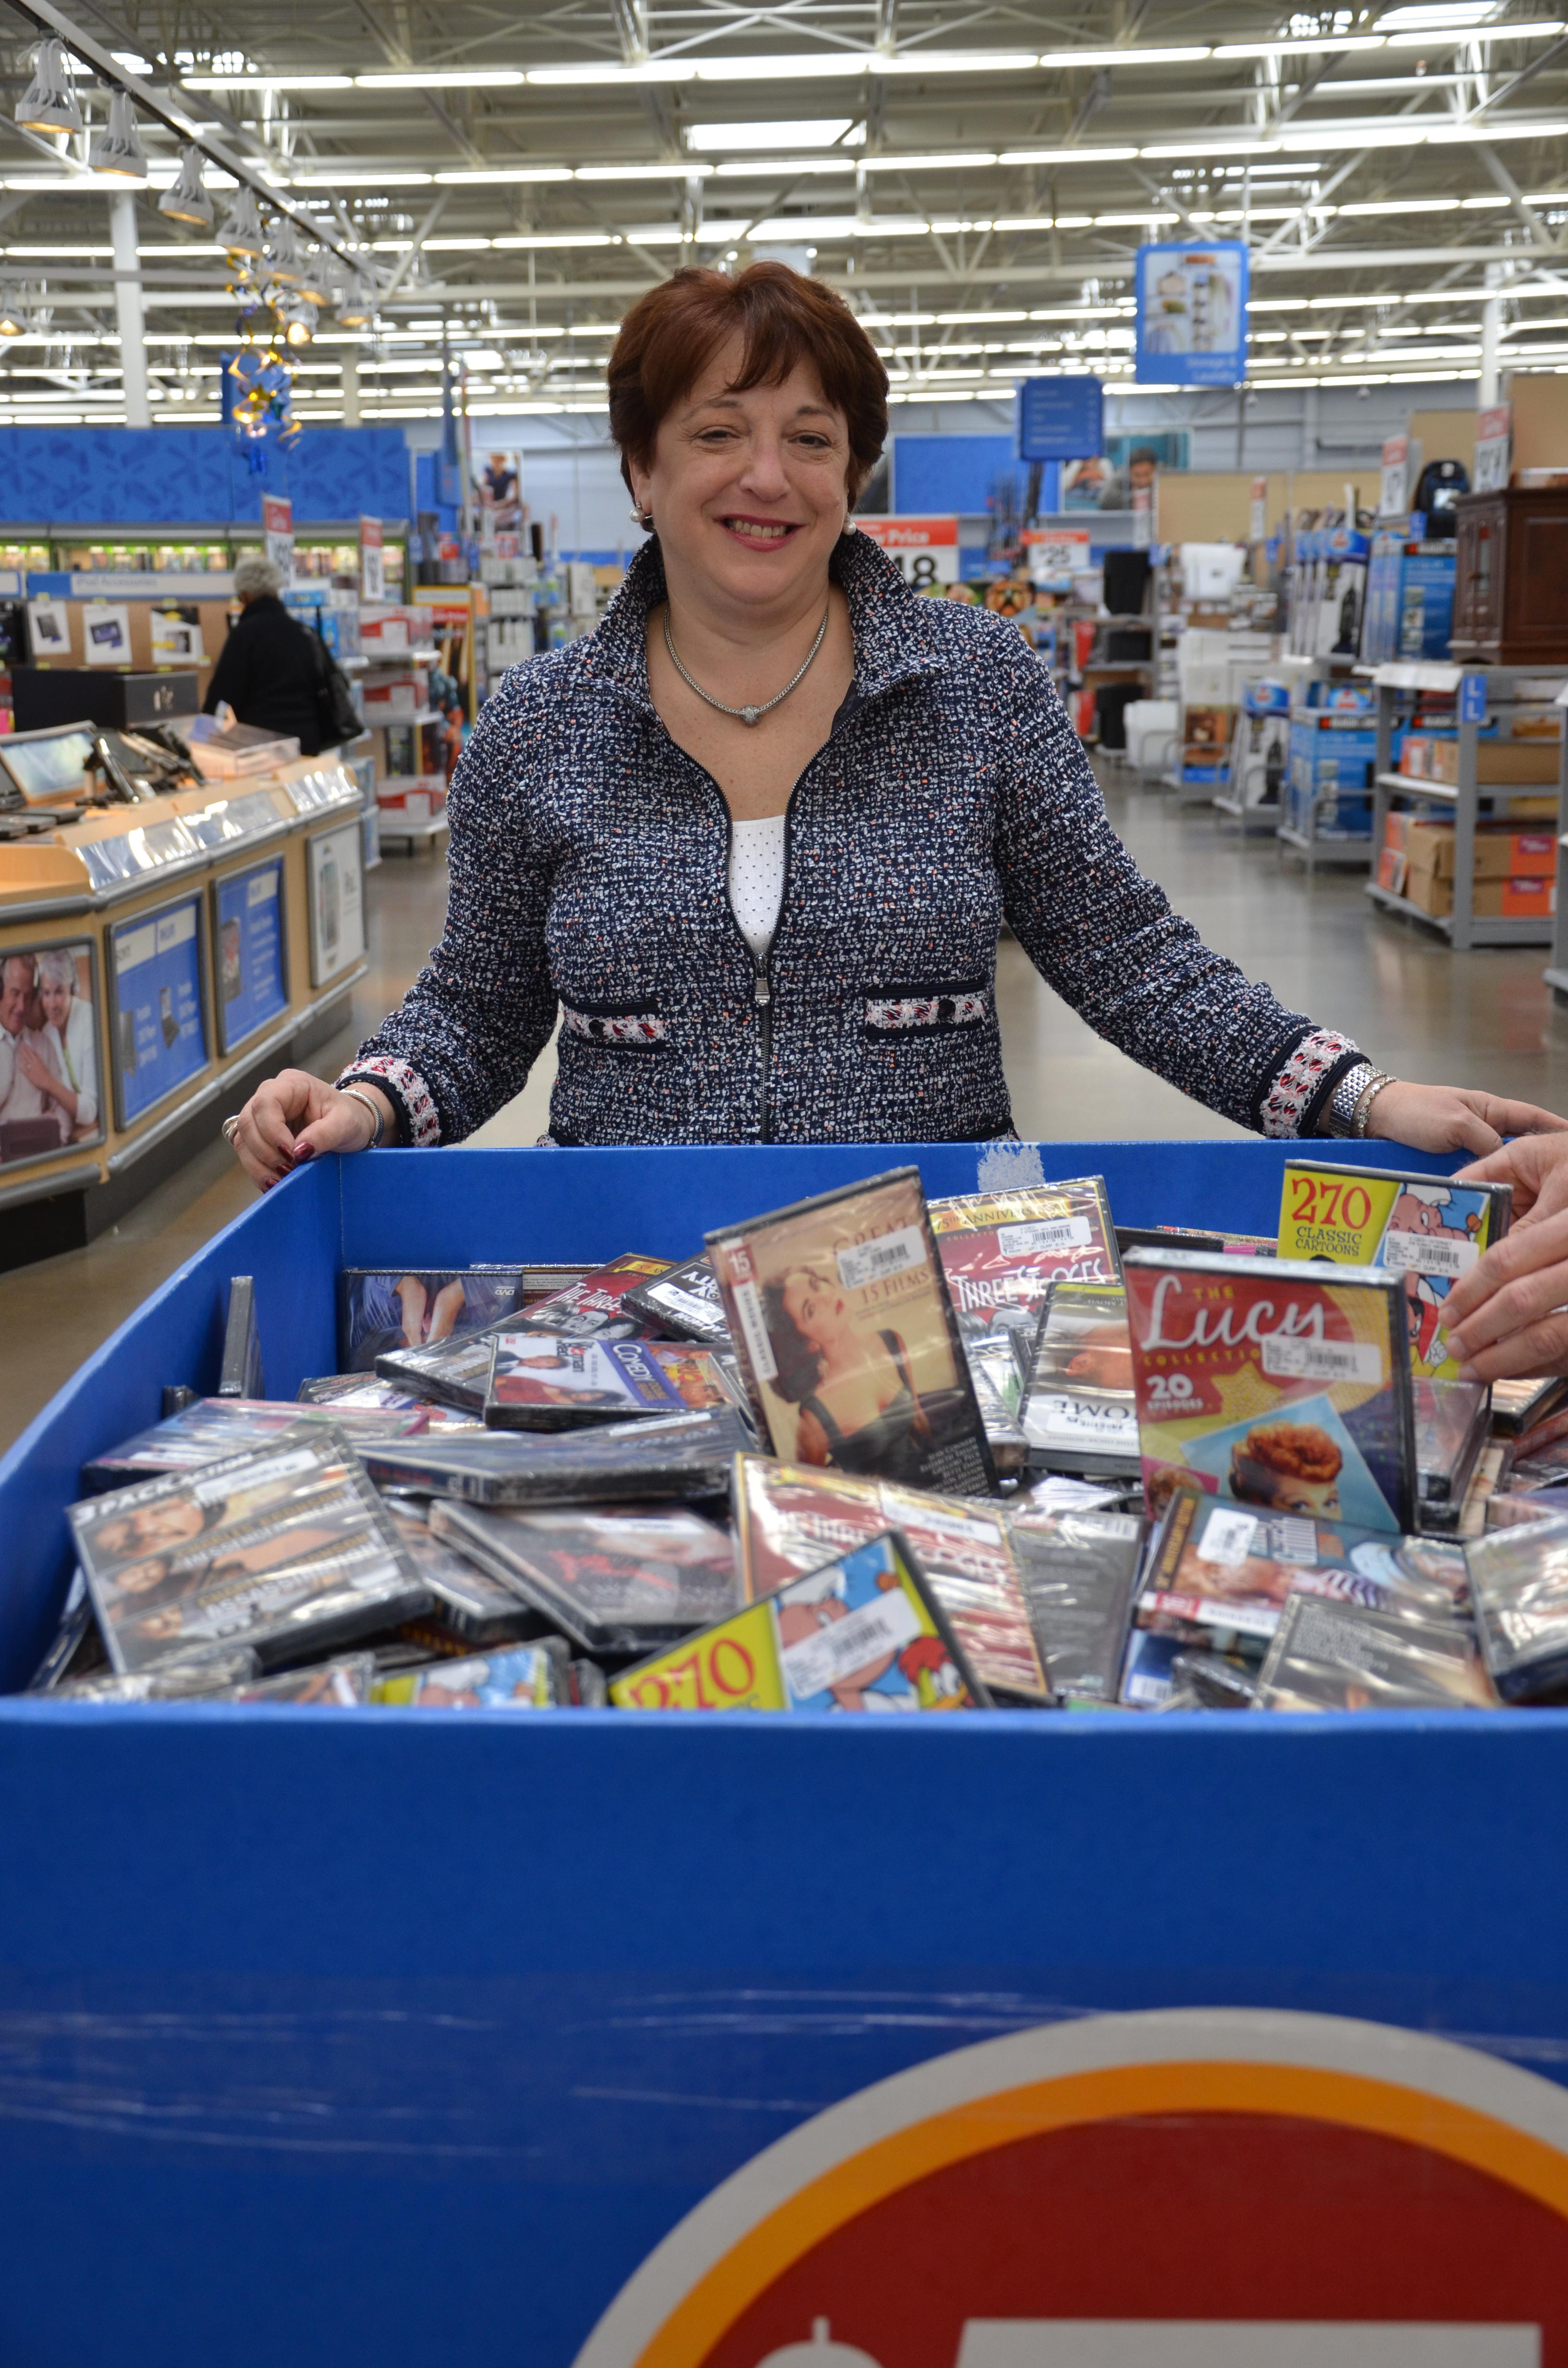 Emily Gottschalk, founder and CEO of TGG Direct, poses with a bin of her products at the Wal-Mart in Somerdale, NJ.